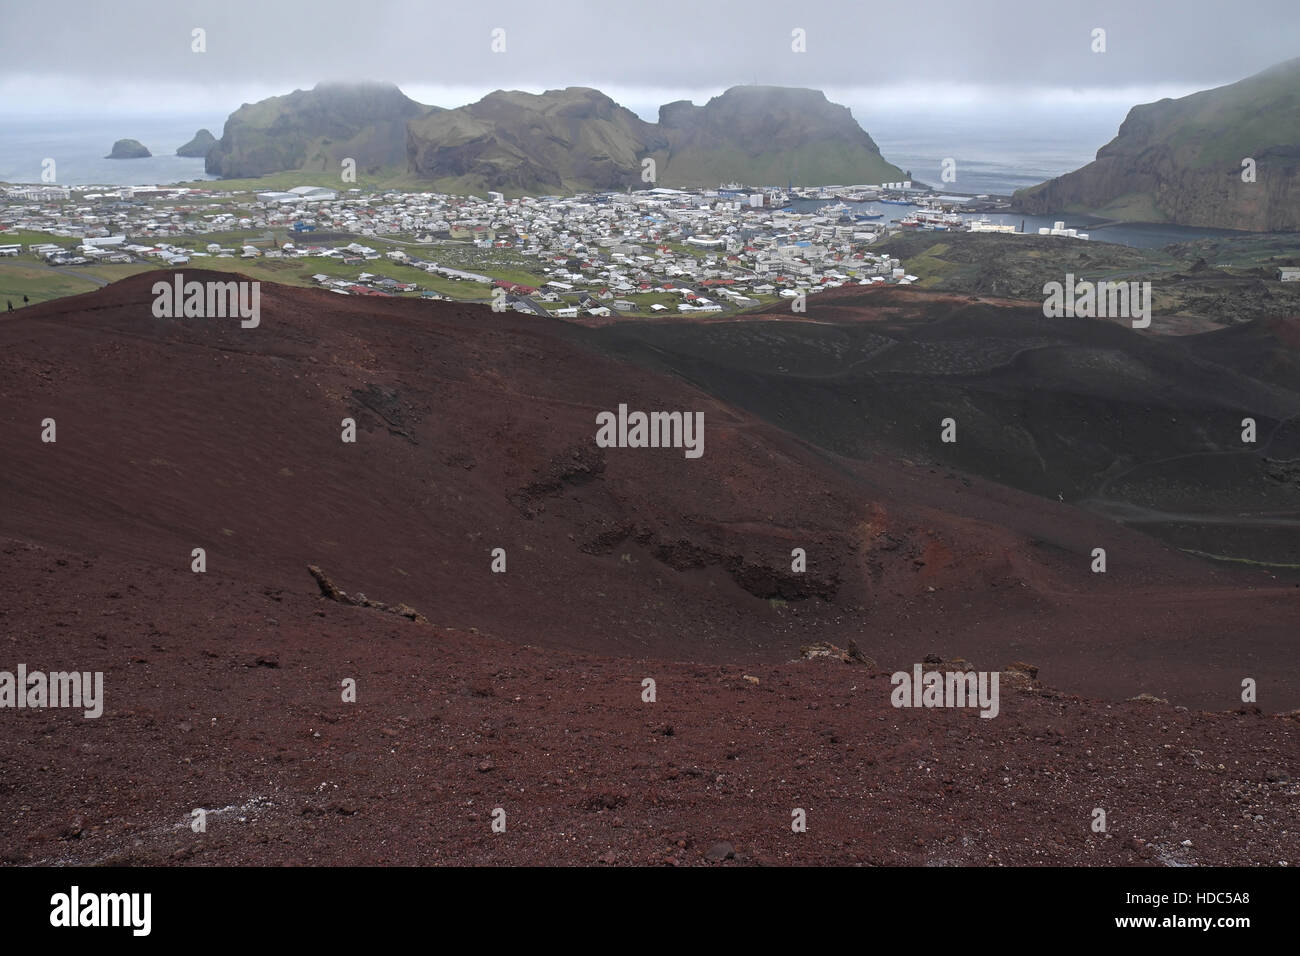 Heimaey seen over volcanic rocks and lava field from of Eldfell, Heimaey, Vestmannaeyjar Islands, southern Iceland Stock Photo